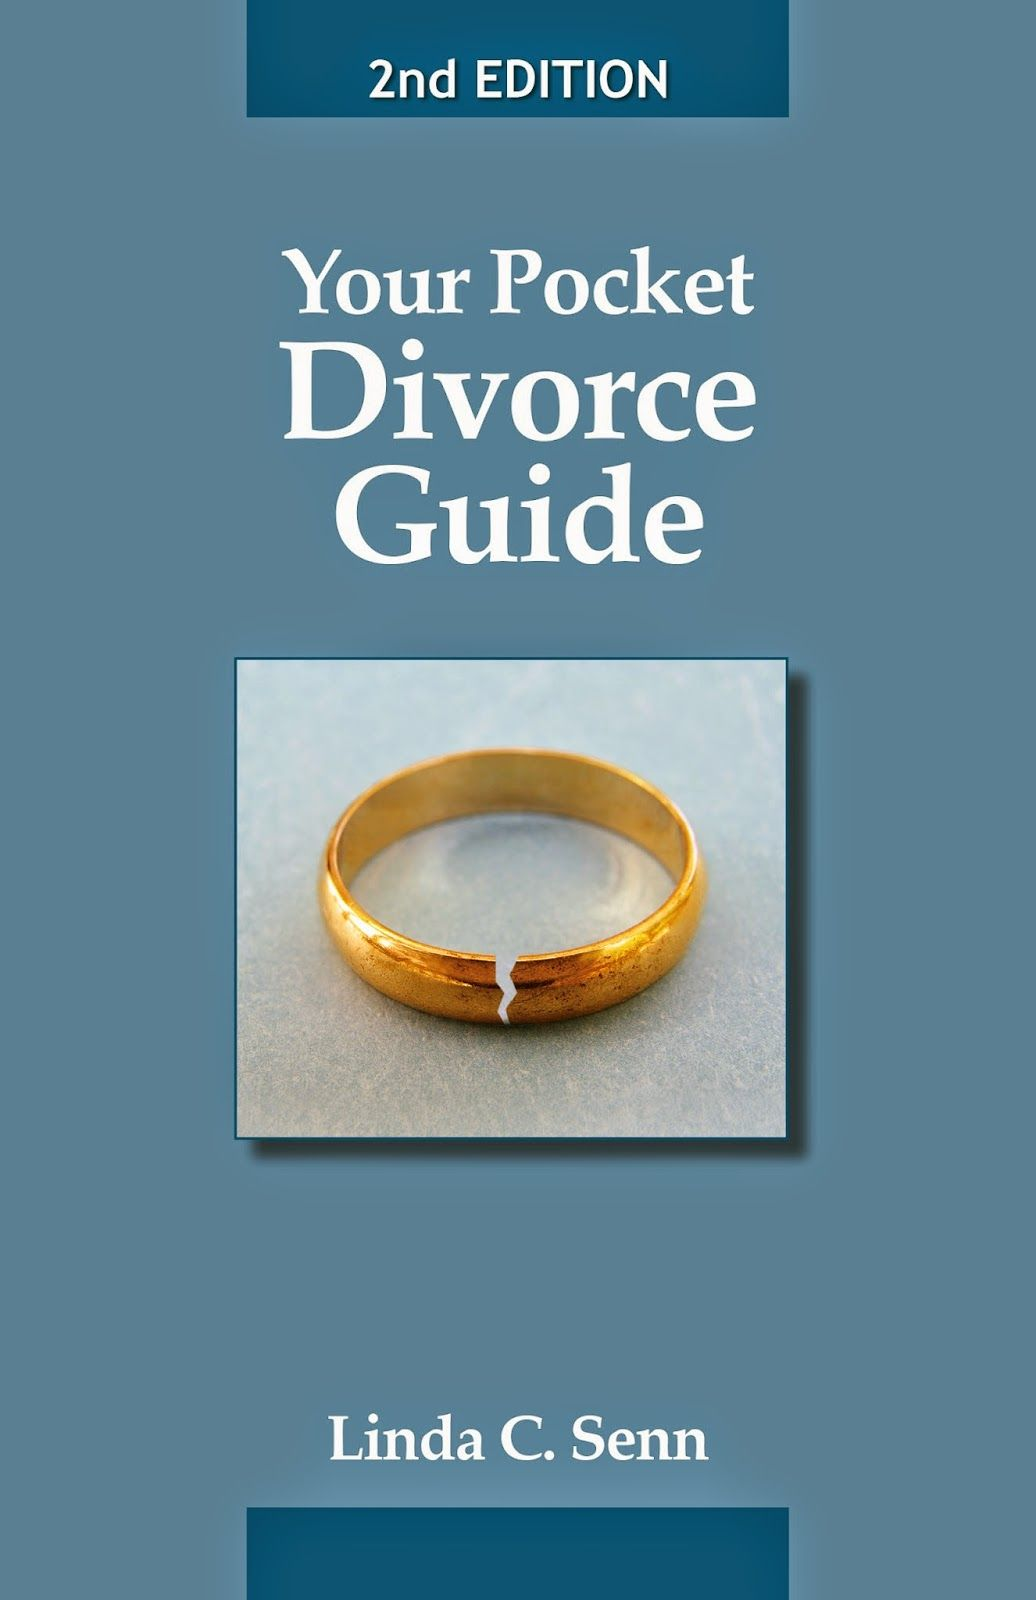 Your Pocket Divorce Guide: YOUR POCKET DIVORCE GUIDE  2nd edition